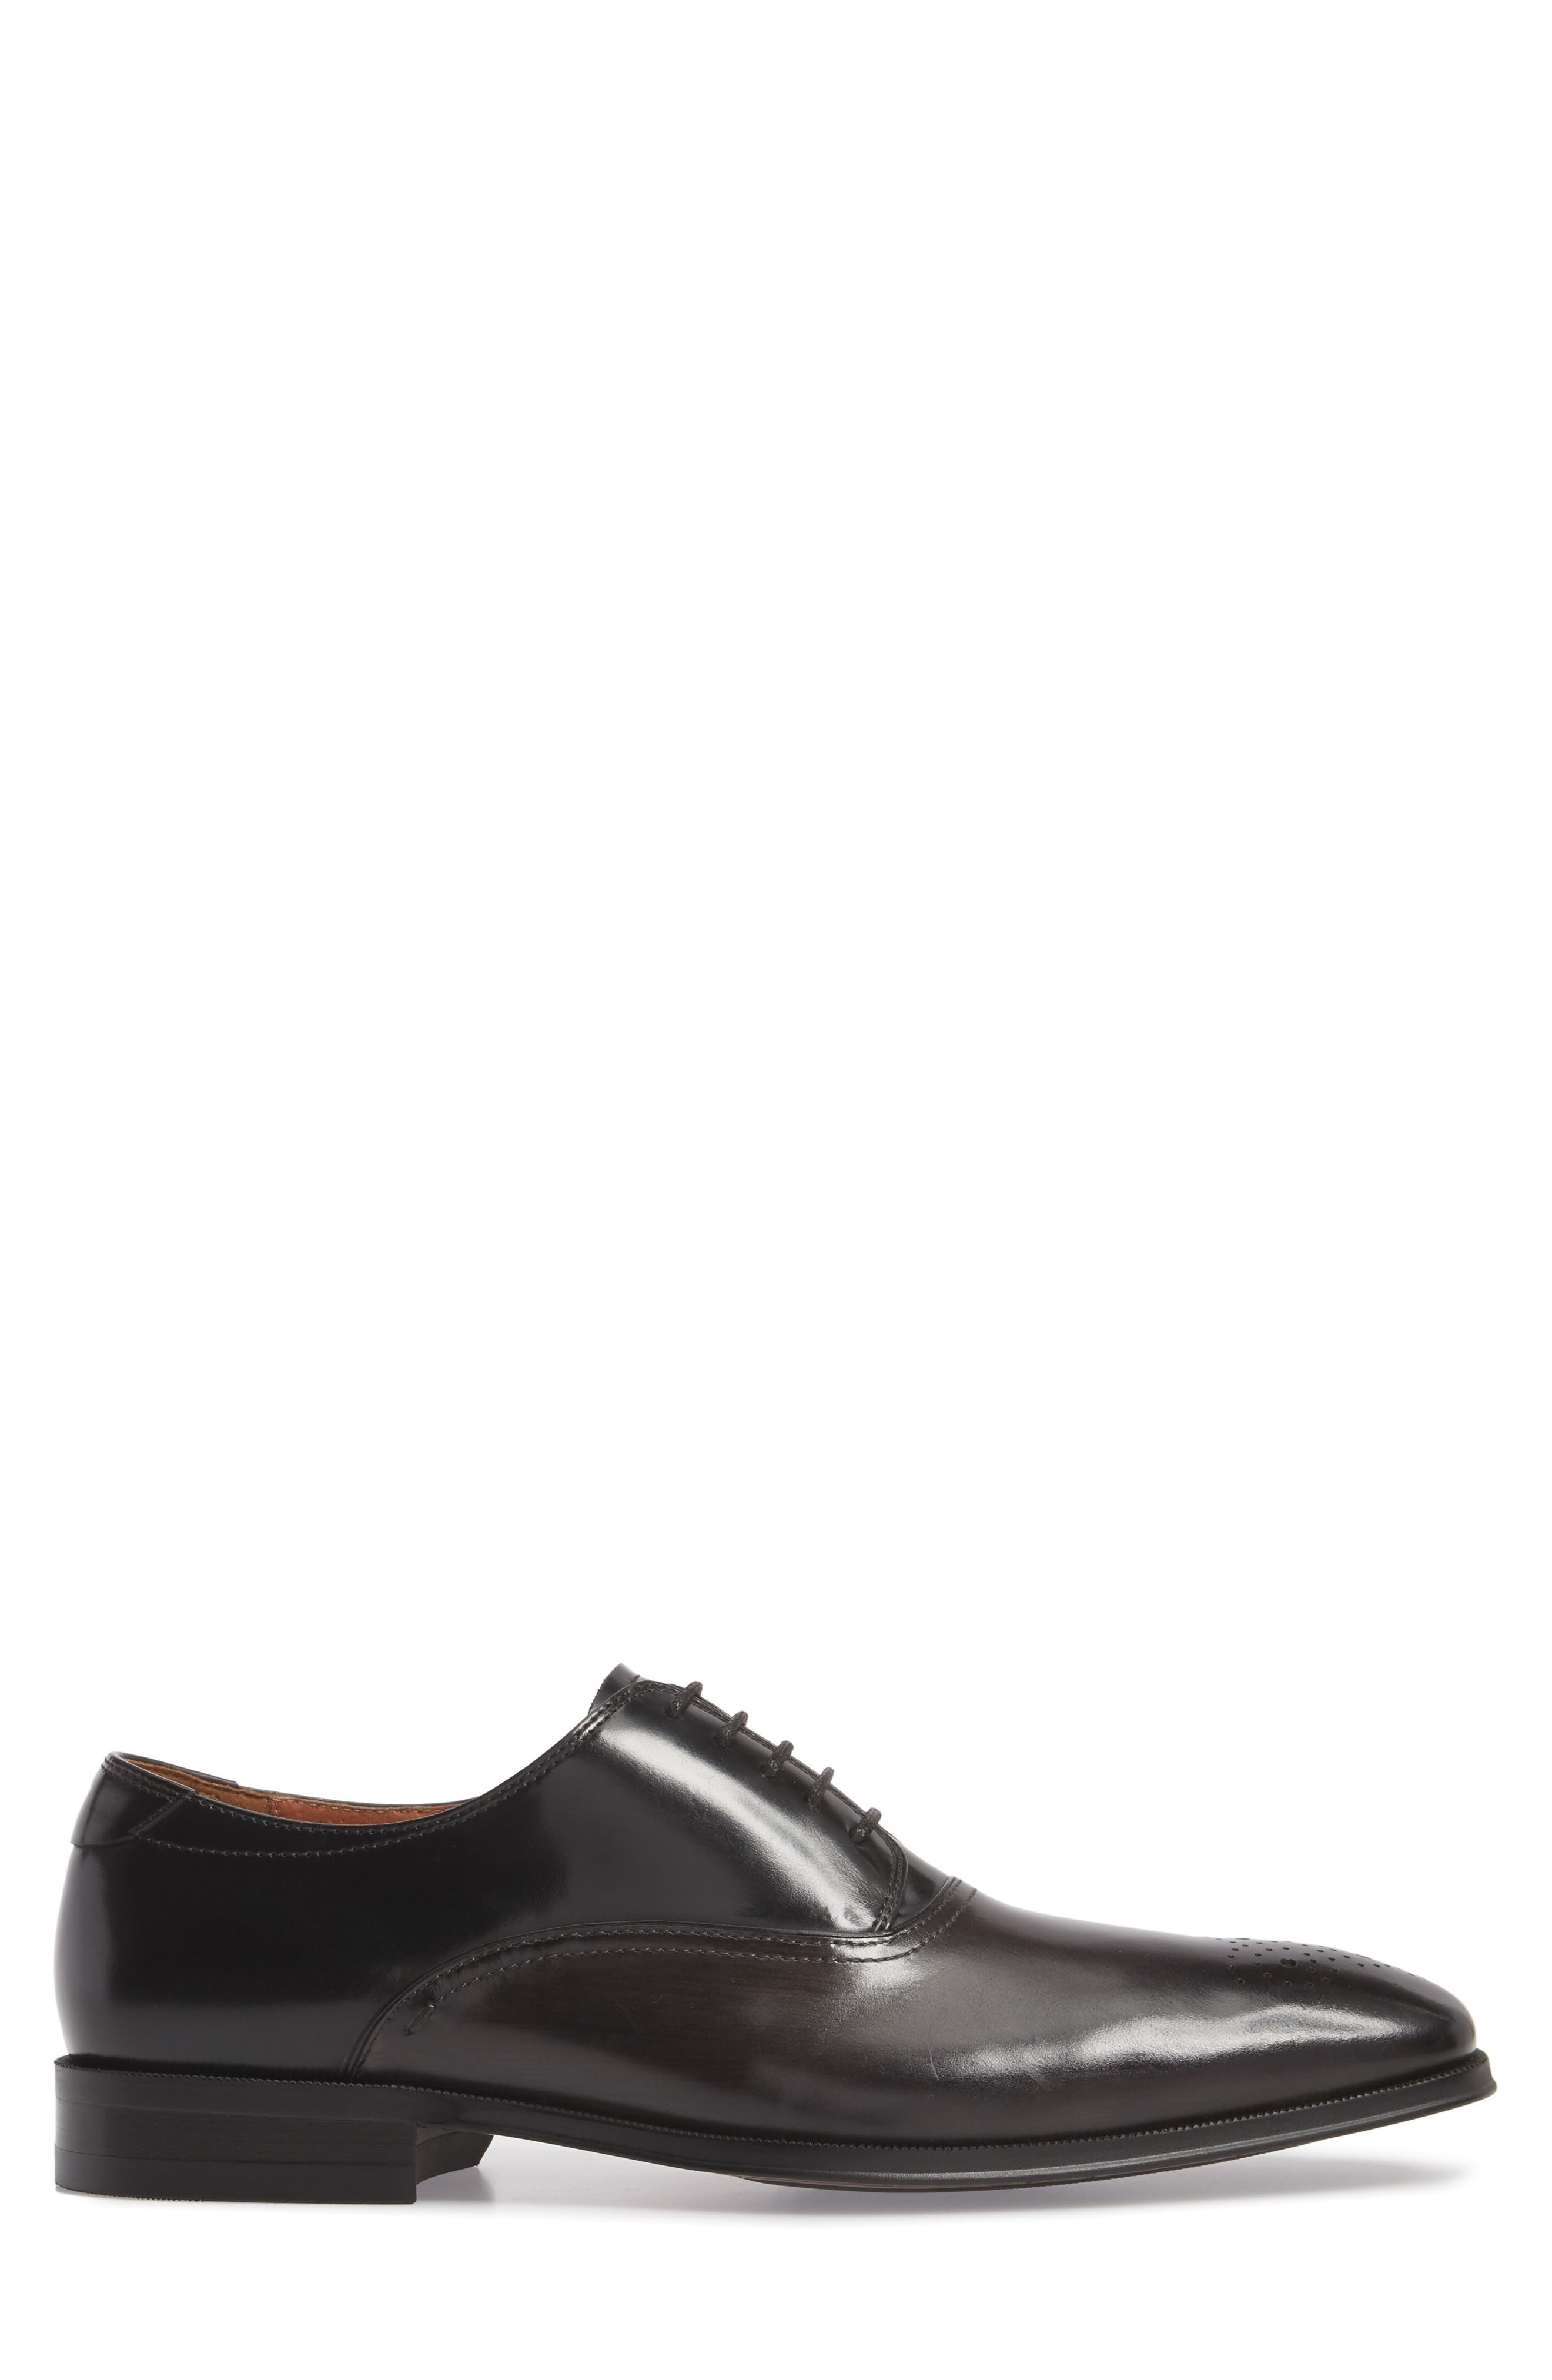 FLORSHEIM, Belfast Brogued Derby, Alternate thumbnail 3, color, GRAY/ BLACK LEATHER